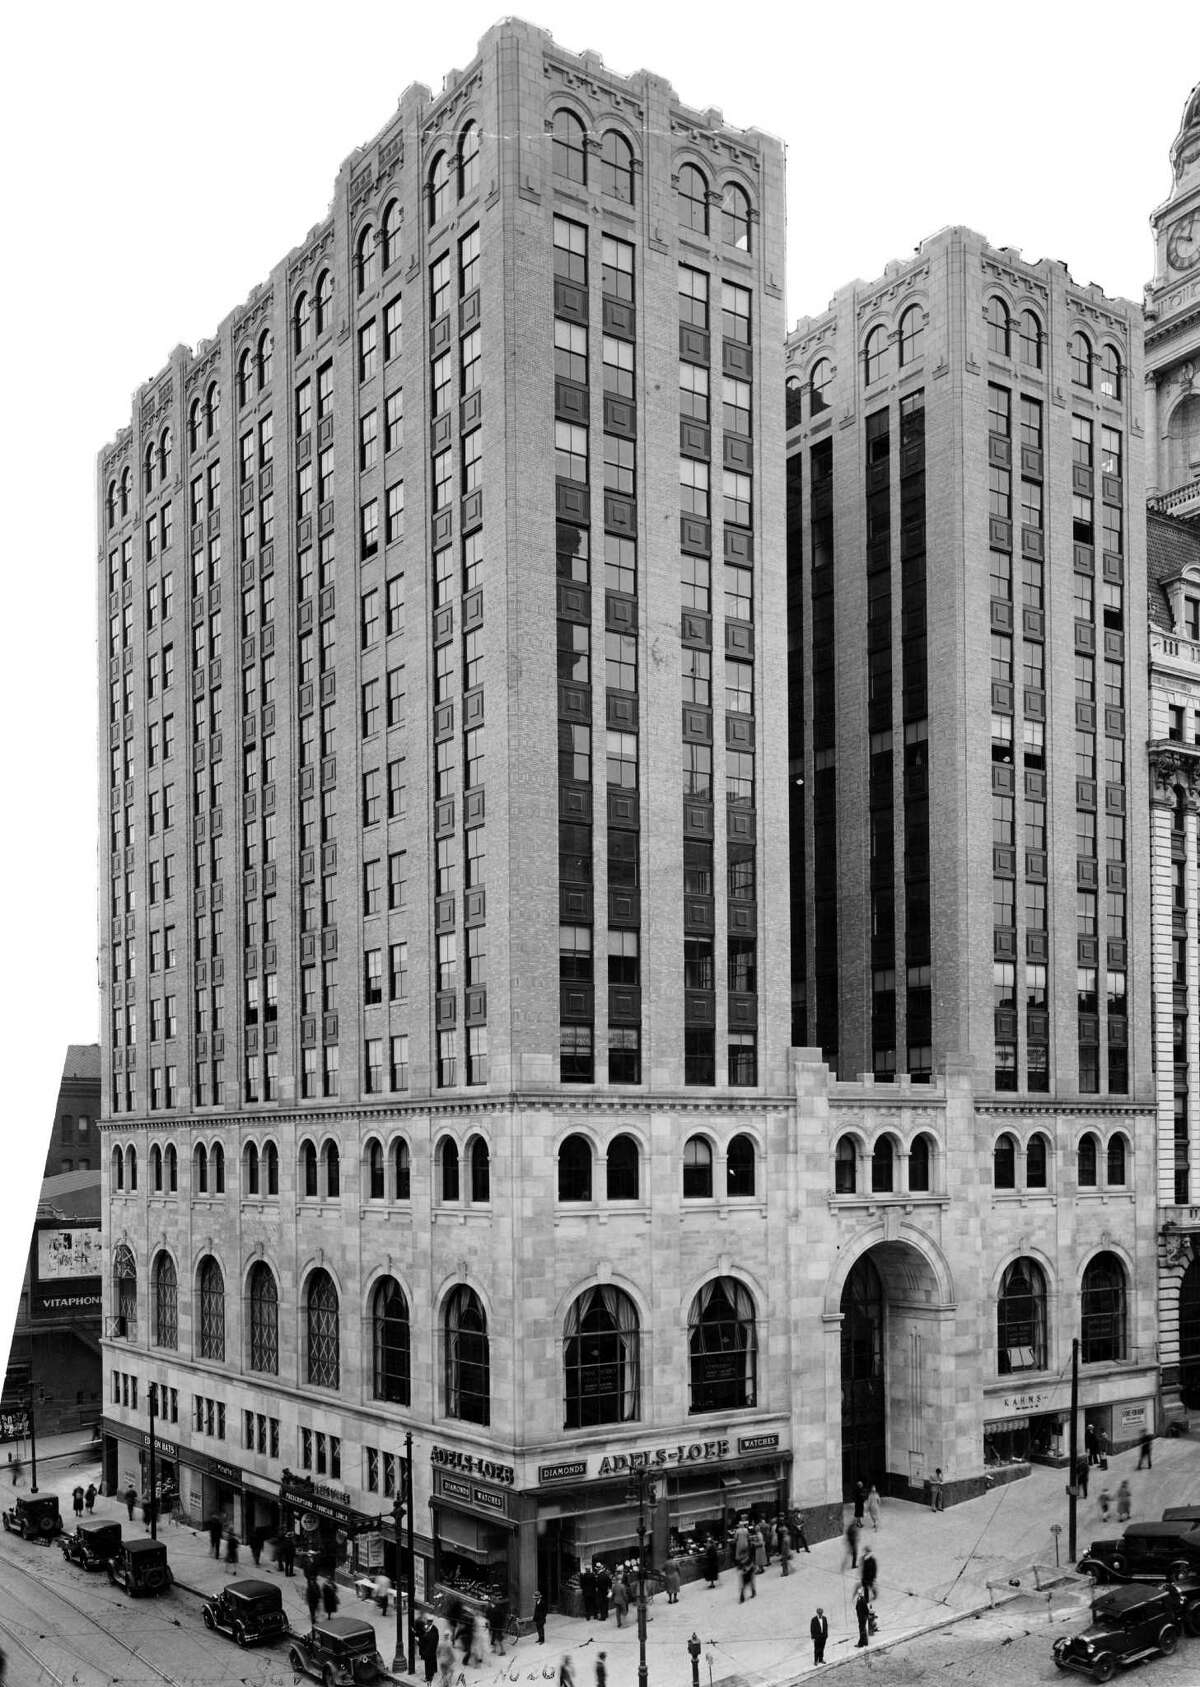 National Savings Bank in Albany. Taken by Glen S. Cook. Date taken approx. 1930's based on cars in photo.